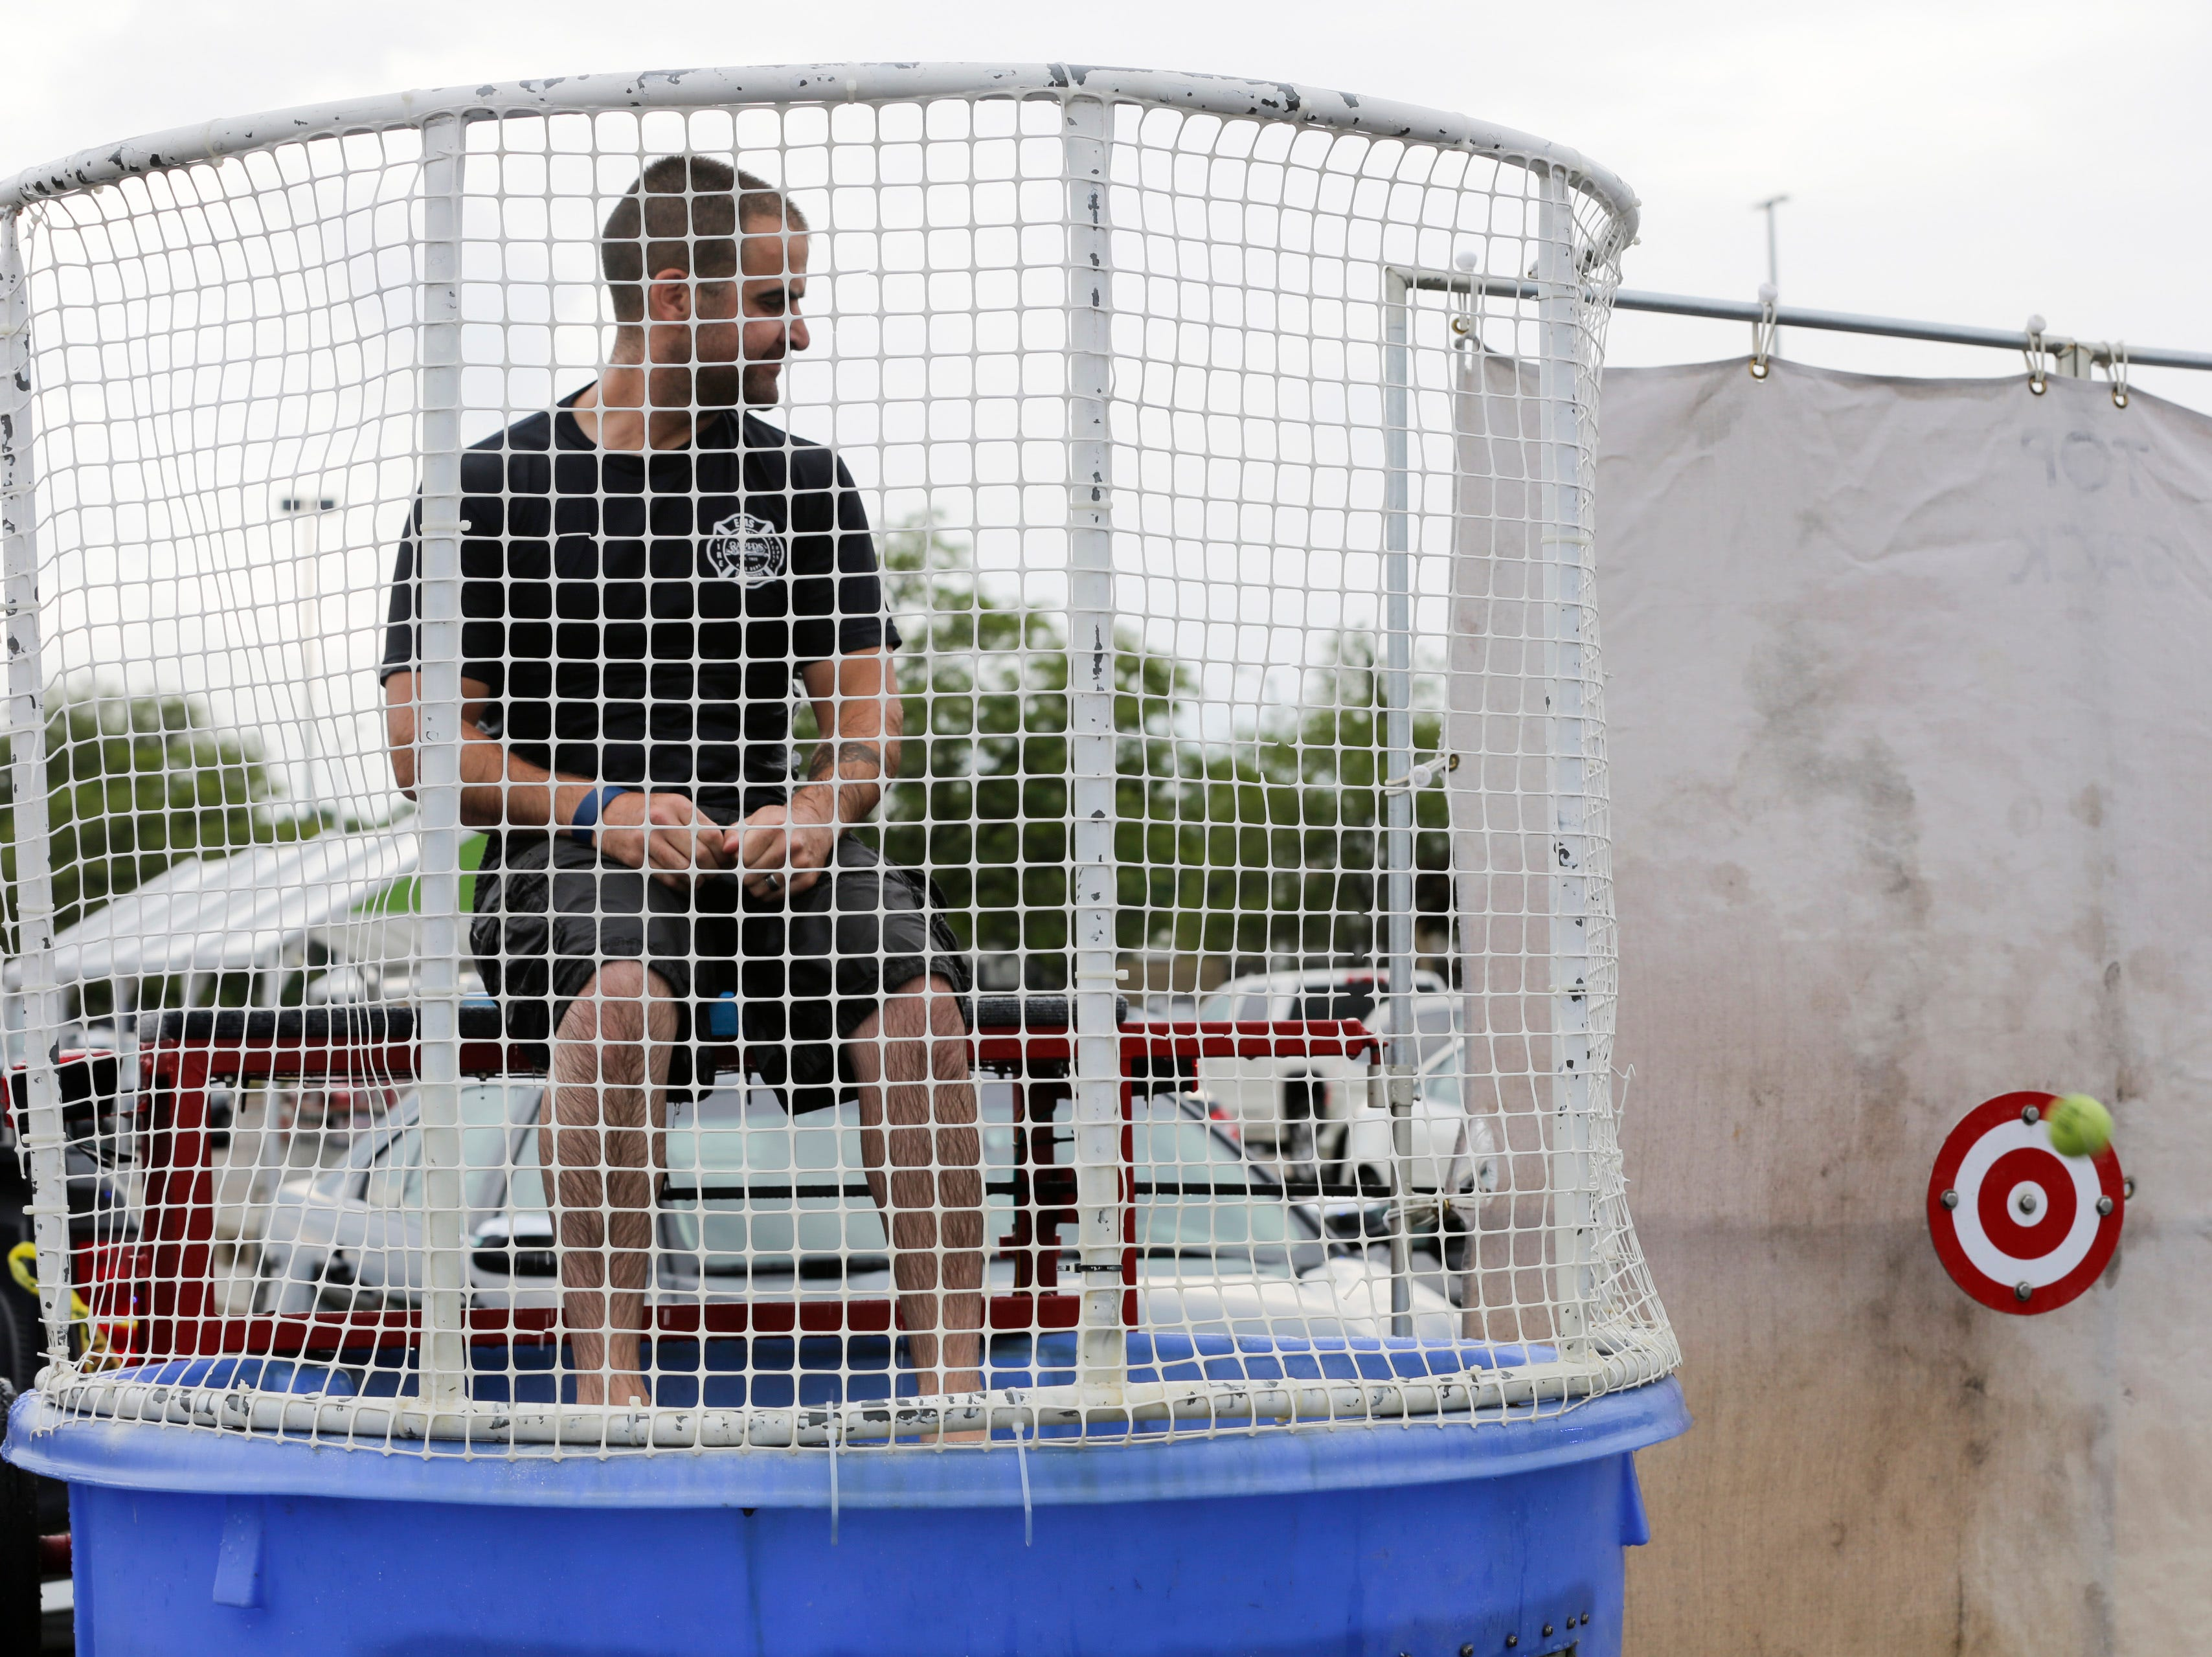 Fire fighter Dustin Lease watches a ball hit the target to send him into the dunk tank during the National Night Out event put on by the Wisconsin Rapids Police Department in the Crossview Church parking lot in Wisconsin Rapids Tuesday, August 7, 2018.